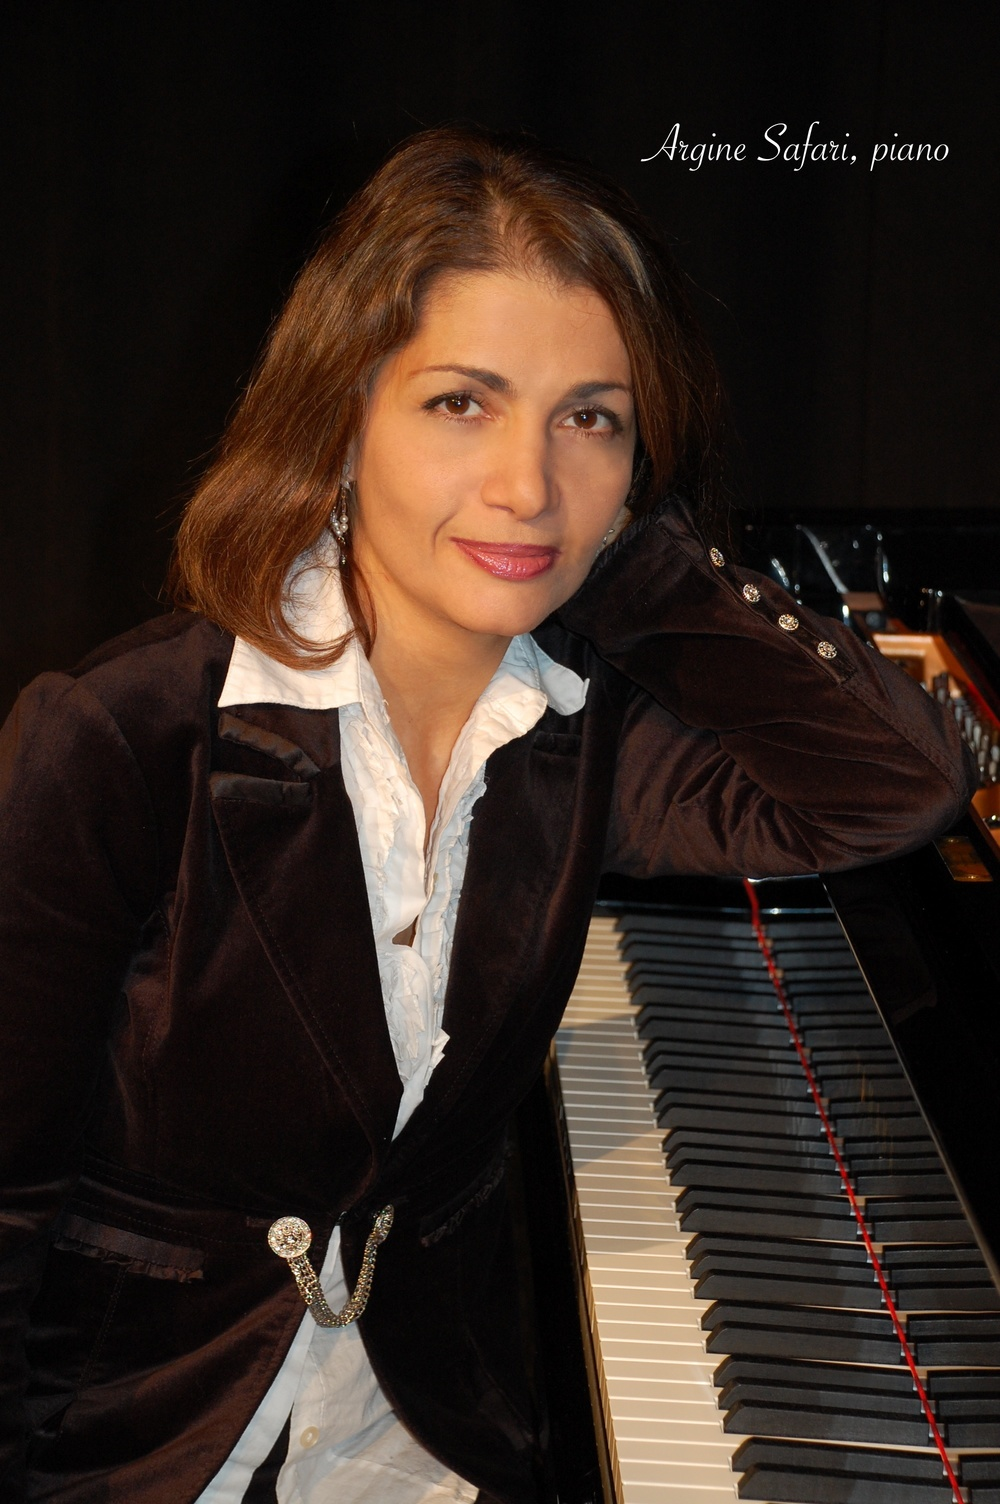 Argine Safari, piano.jpg